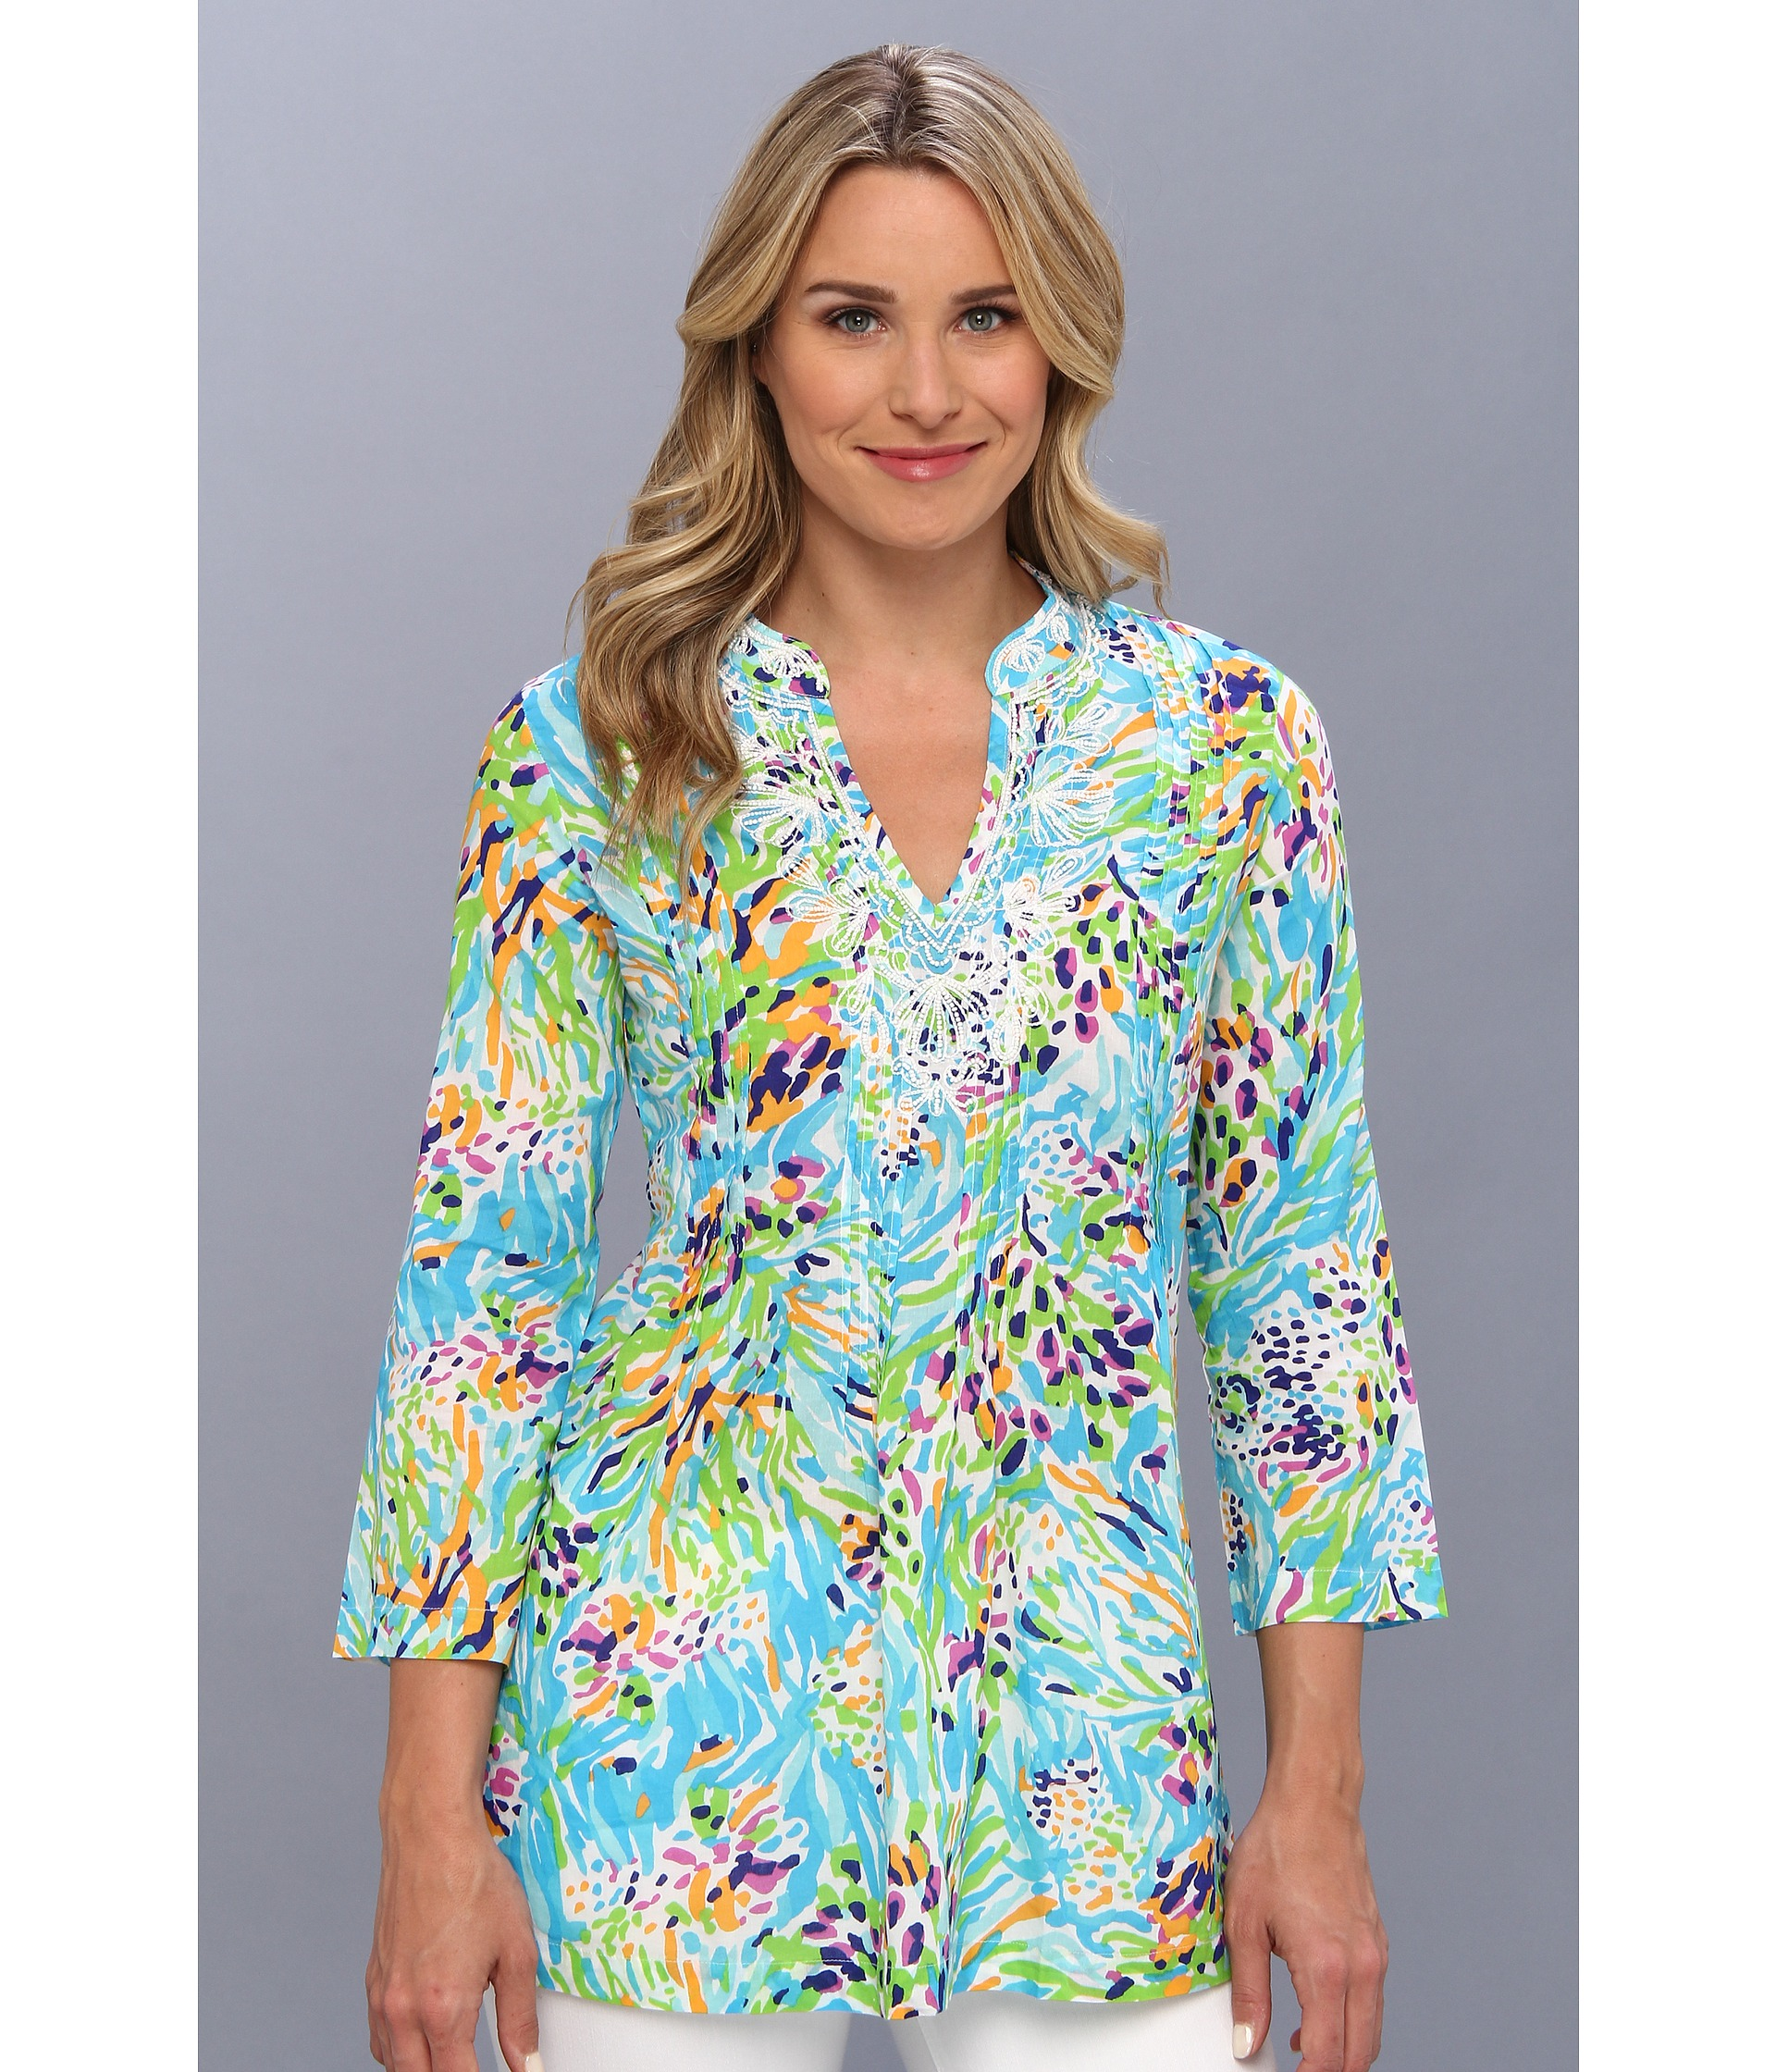 3f373bce82d66d This Lilly Pulitzer one would also do just fine in this category:  2651717-p-4x